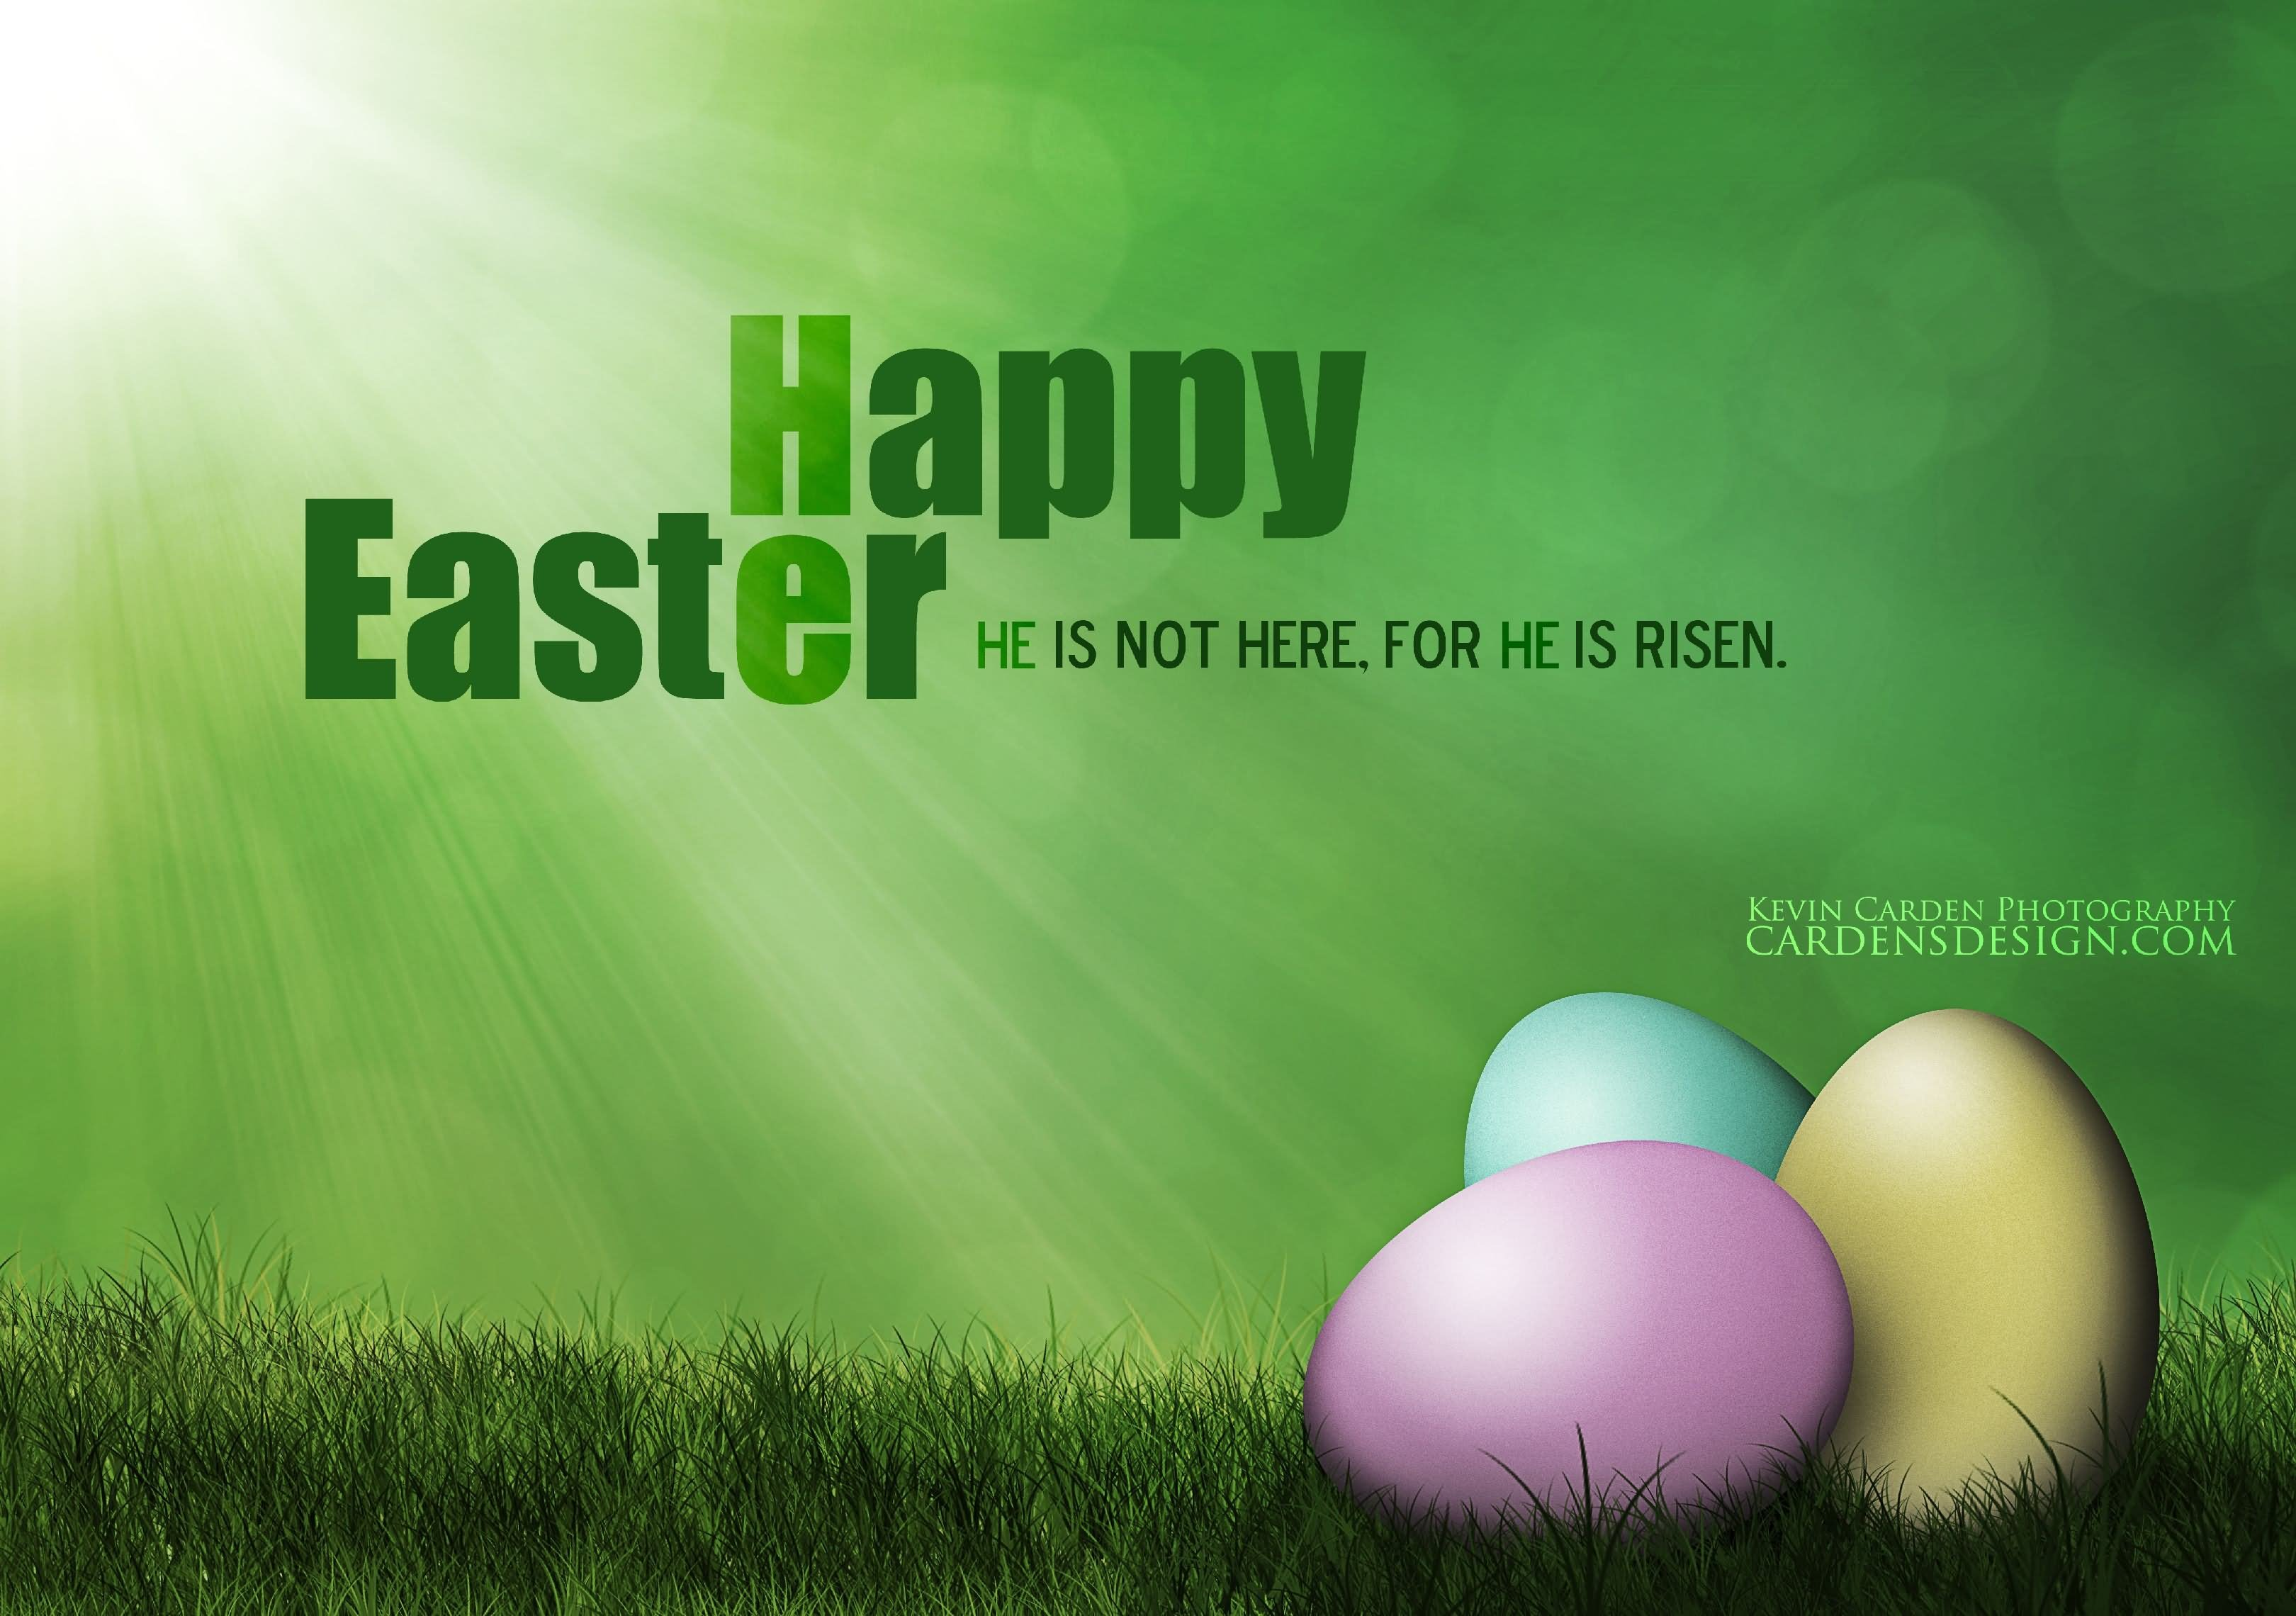 Happy Easter He Is Not Here For He Is Risen